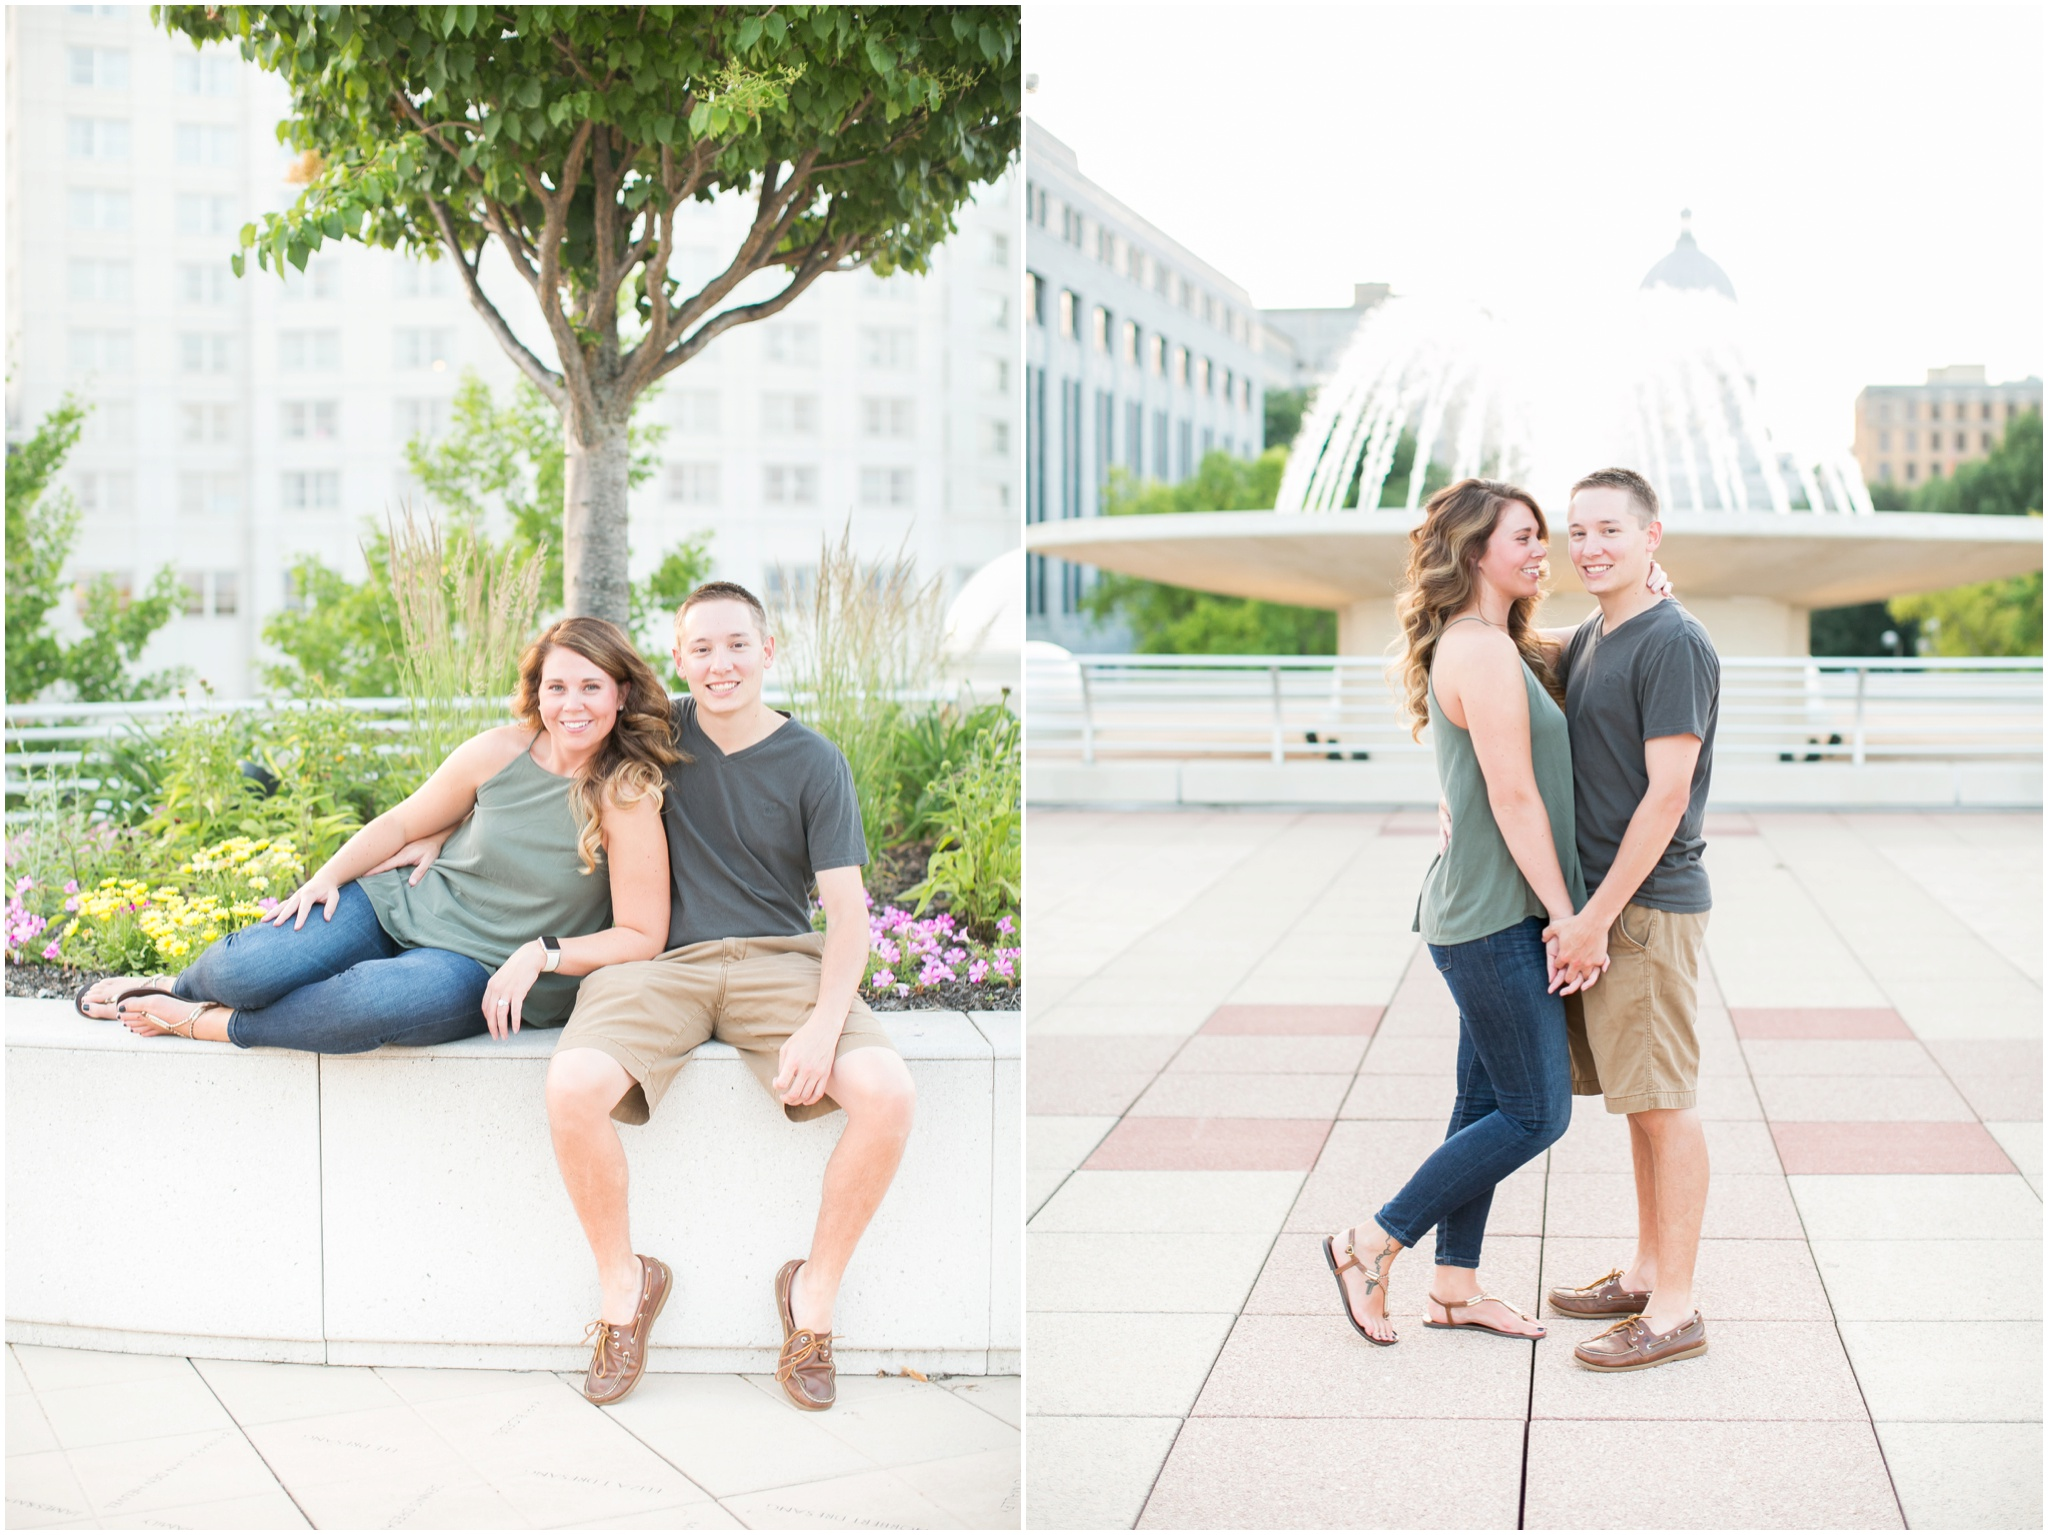 Downtown_Madison_Wisconsin_Engagement_Session_Waterfront_Monona_Terrace_0481.jpg